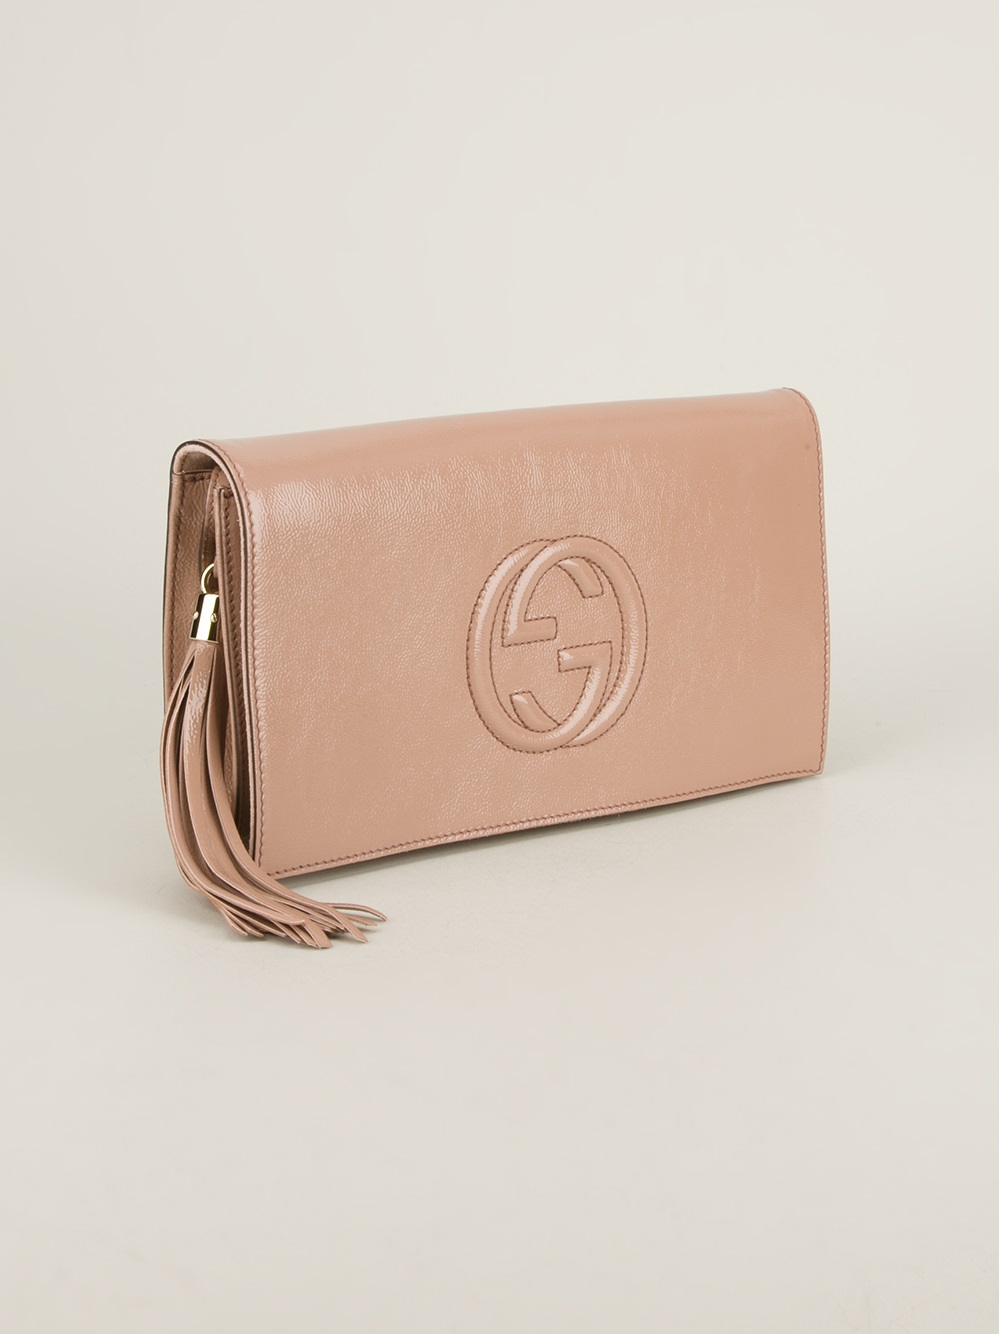 gucci clutch. gallery gucci clutch